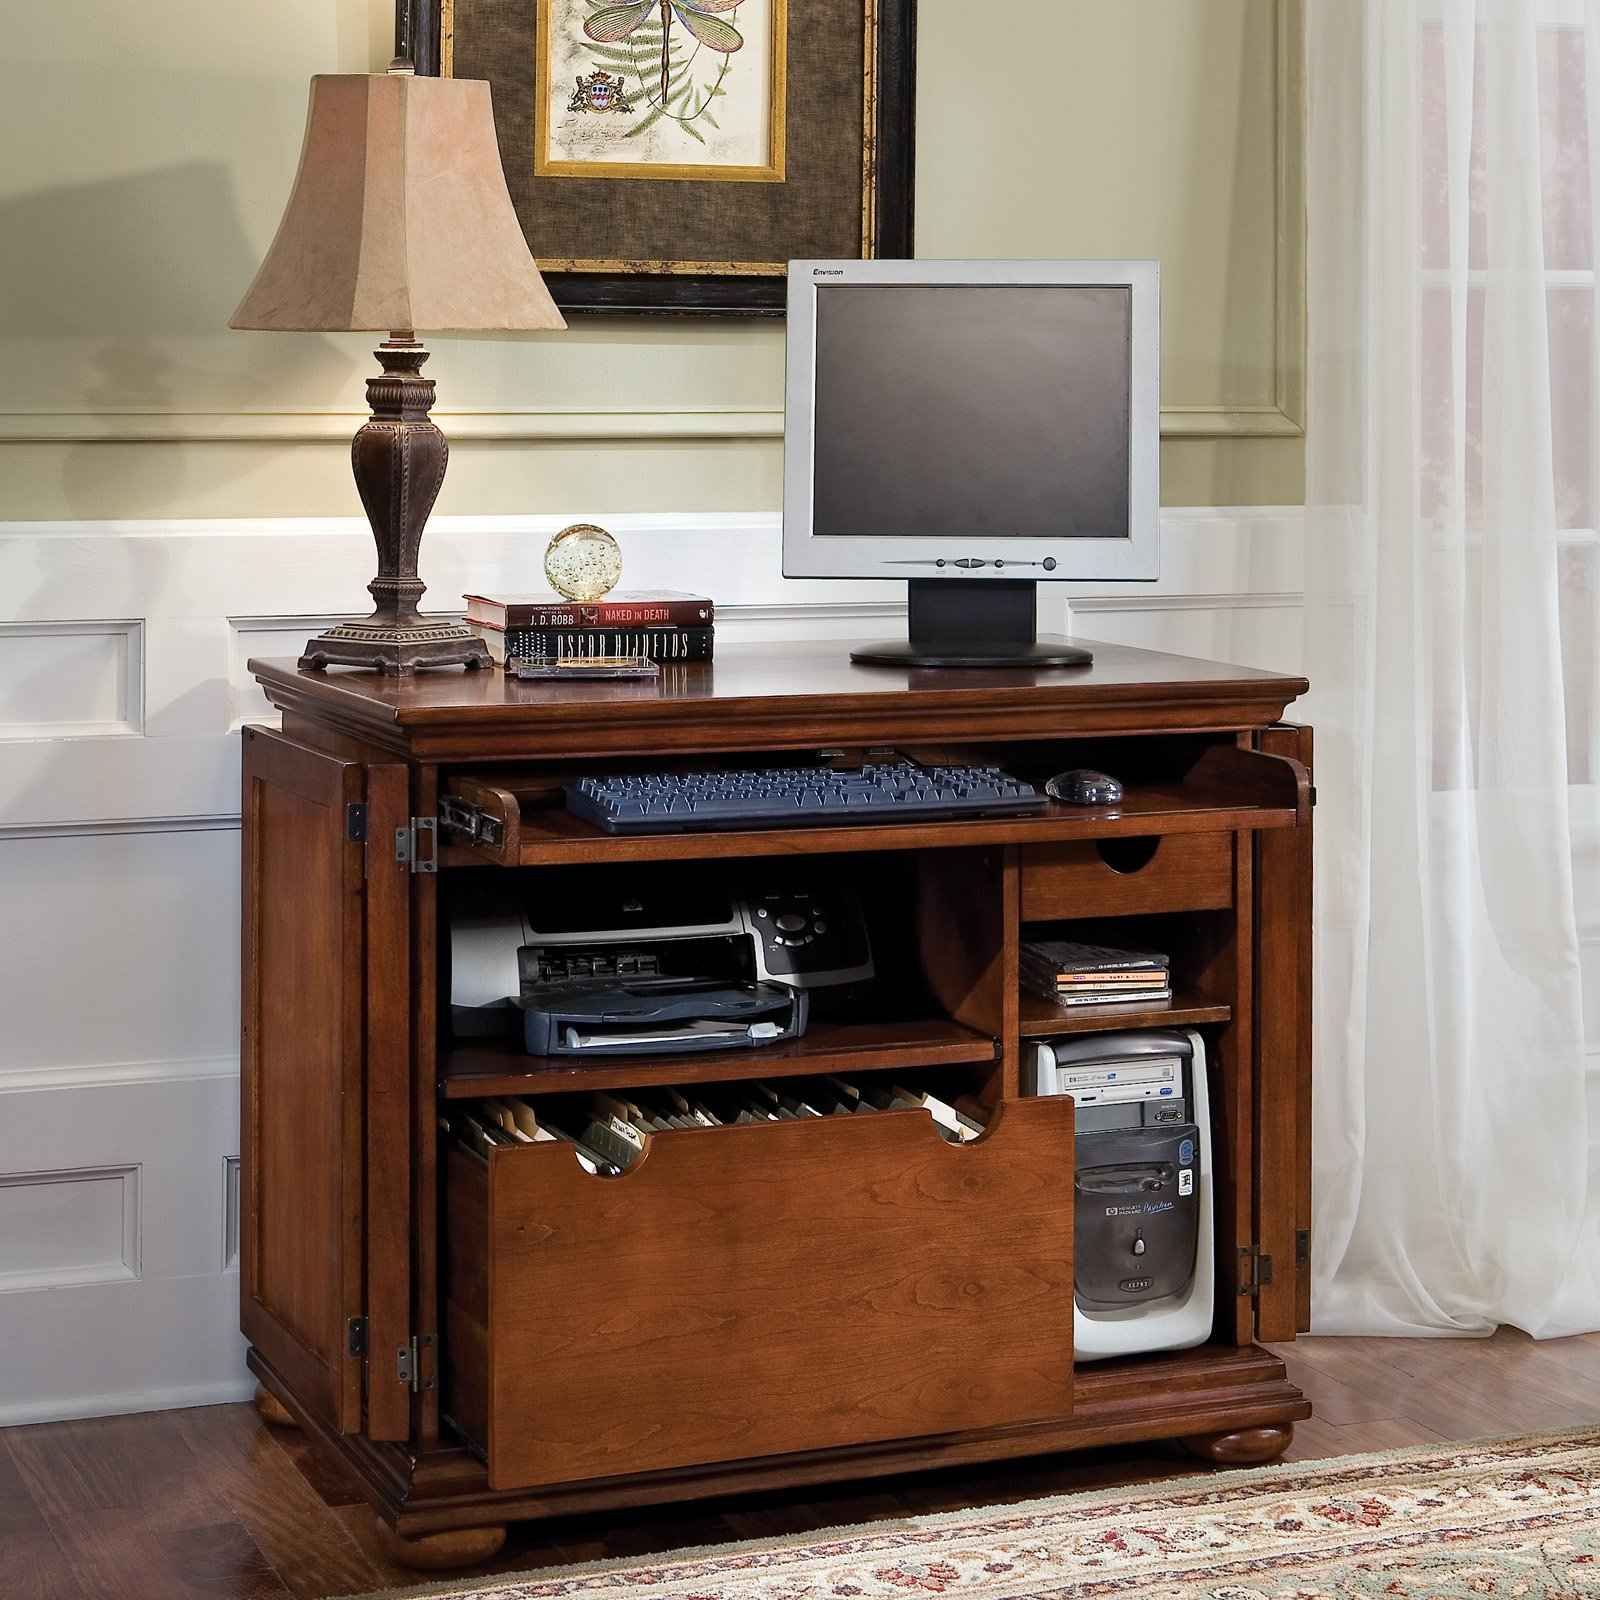 Classic Style of computer armoire with open storage design